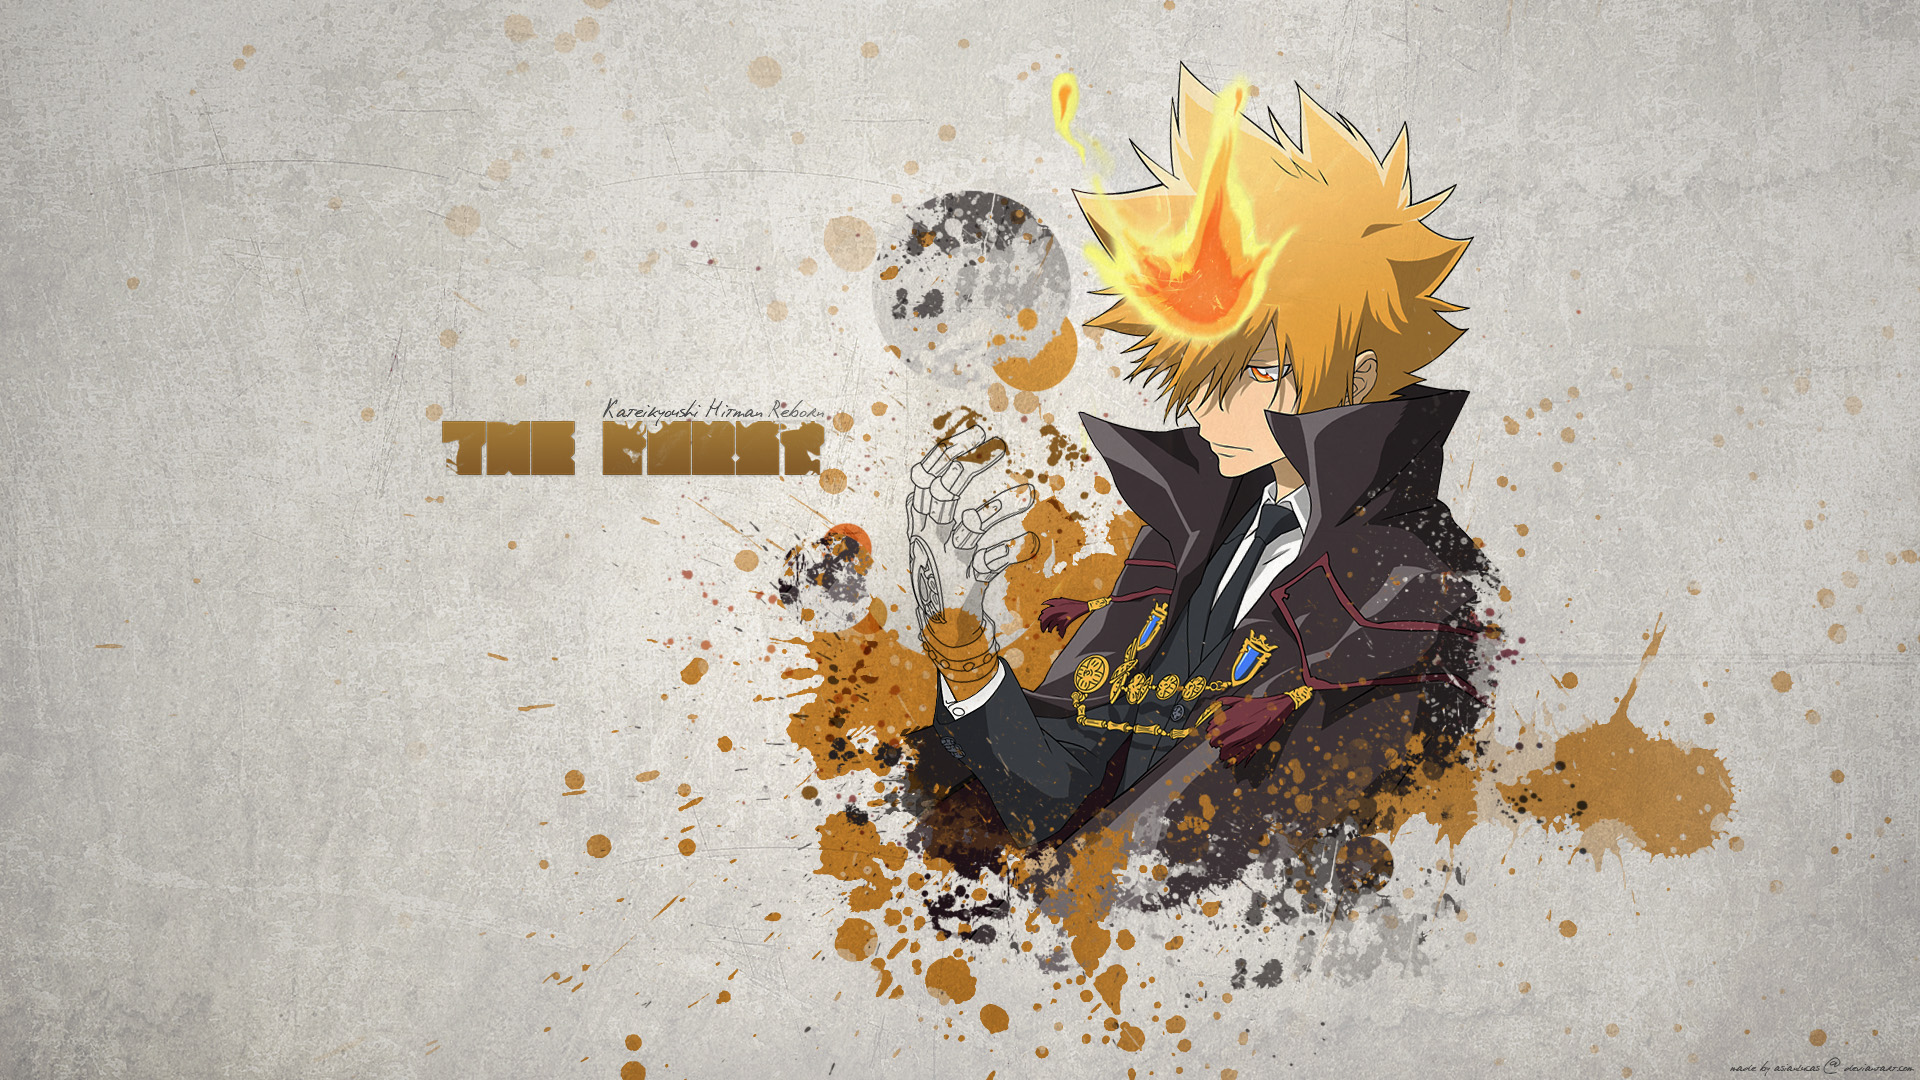 1080p katekyo hitman reborn wallpaper hd